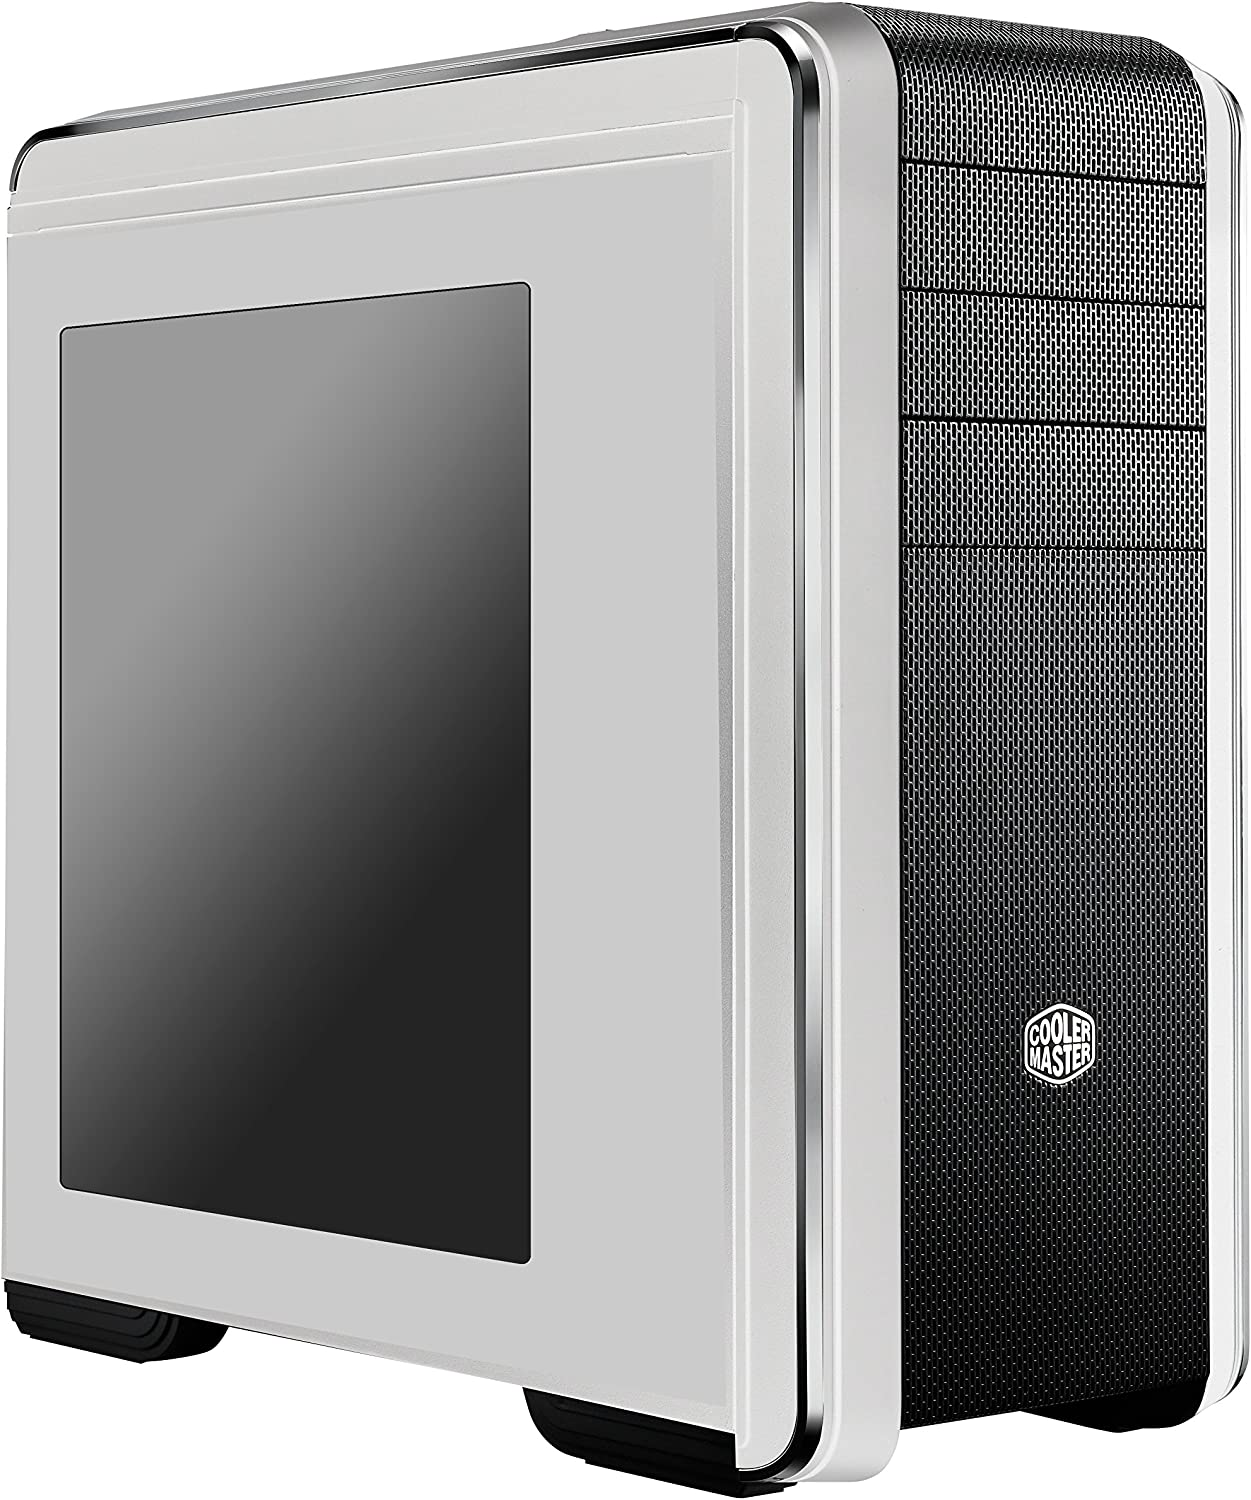 microATX Window Side Panel CMS-693-WWN1-V2 Cooler Master cm 690 III White Computer Case ATX USB 3.0